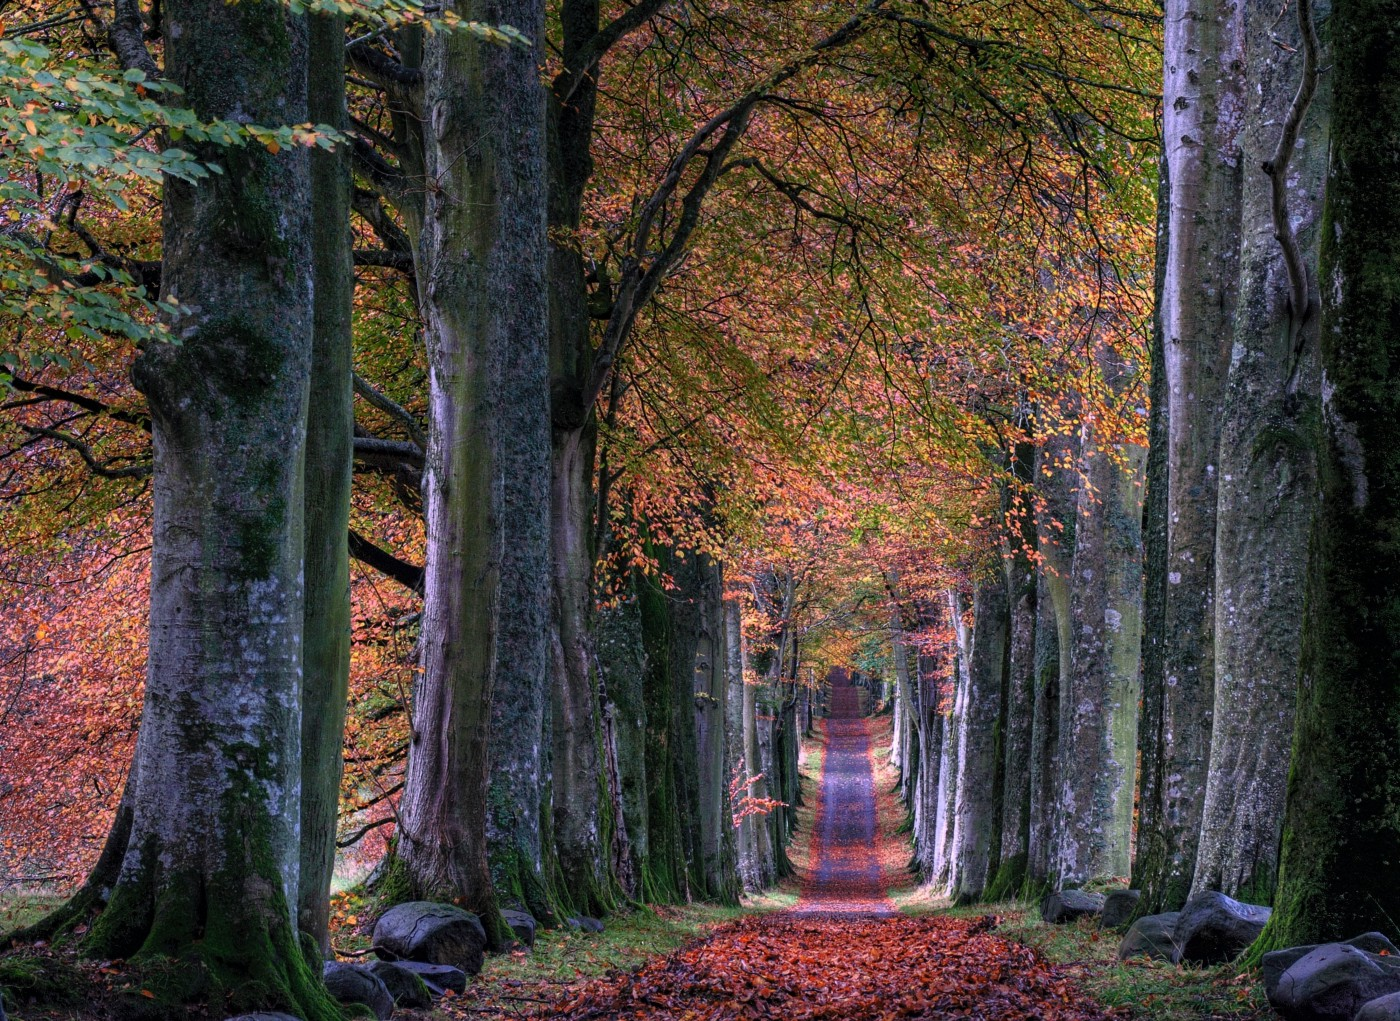 Photo of a path lined with fall beautiful bright colored leaves, cutting through a wooded area.